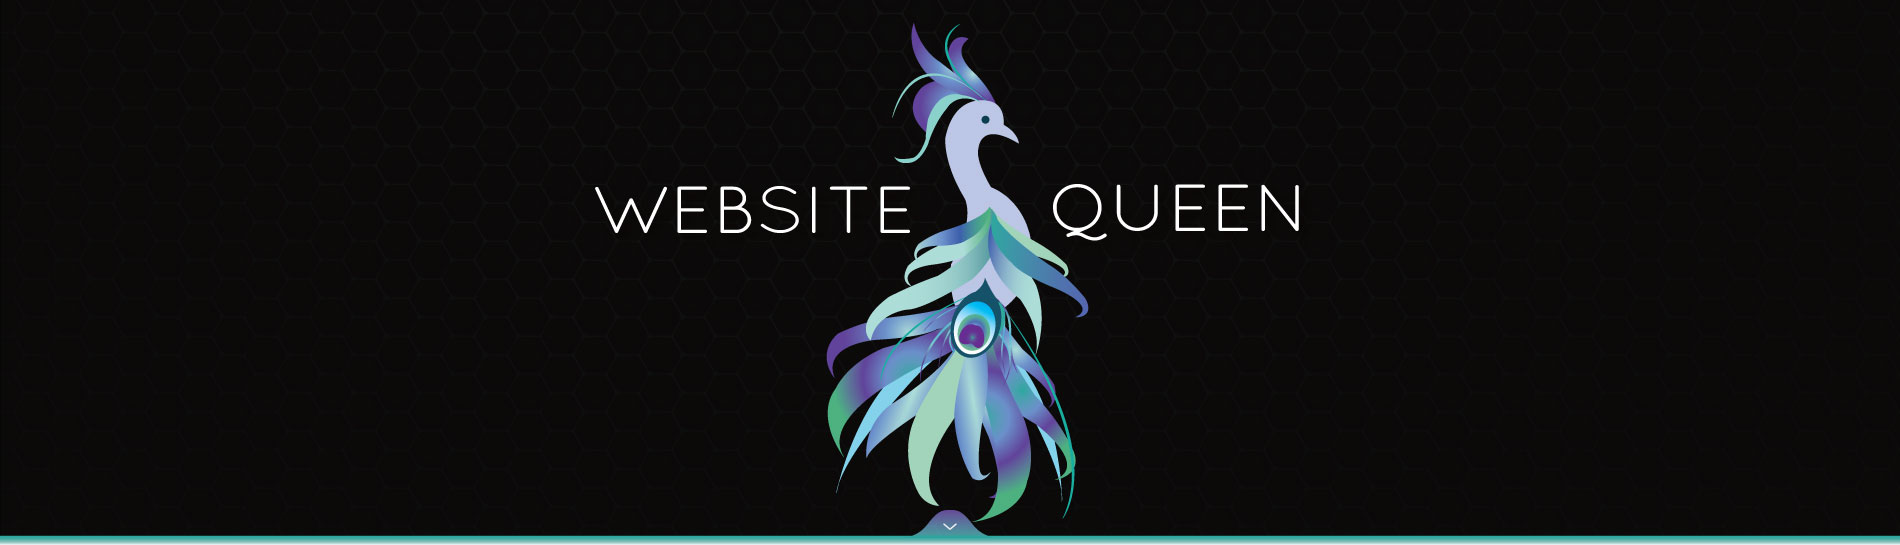 about website queen